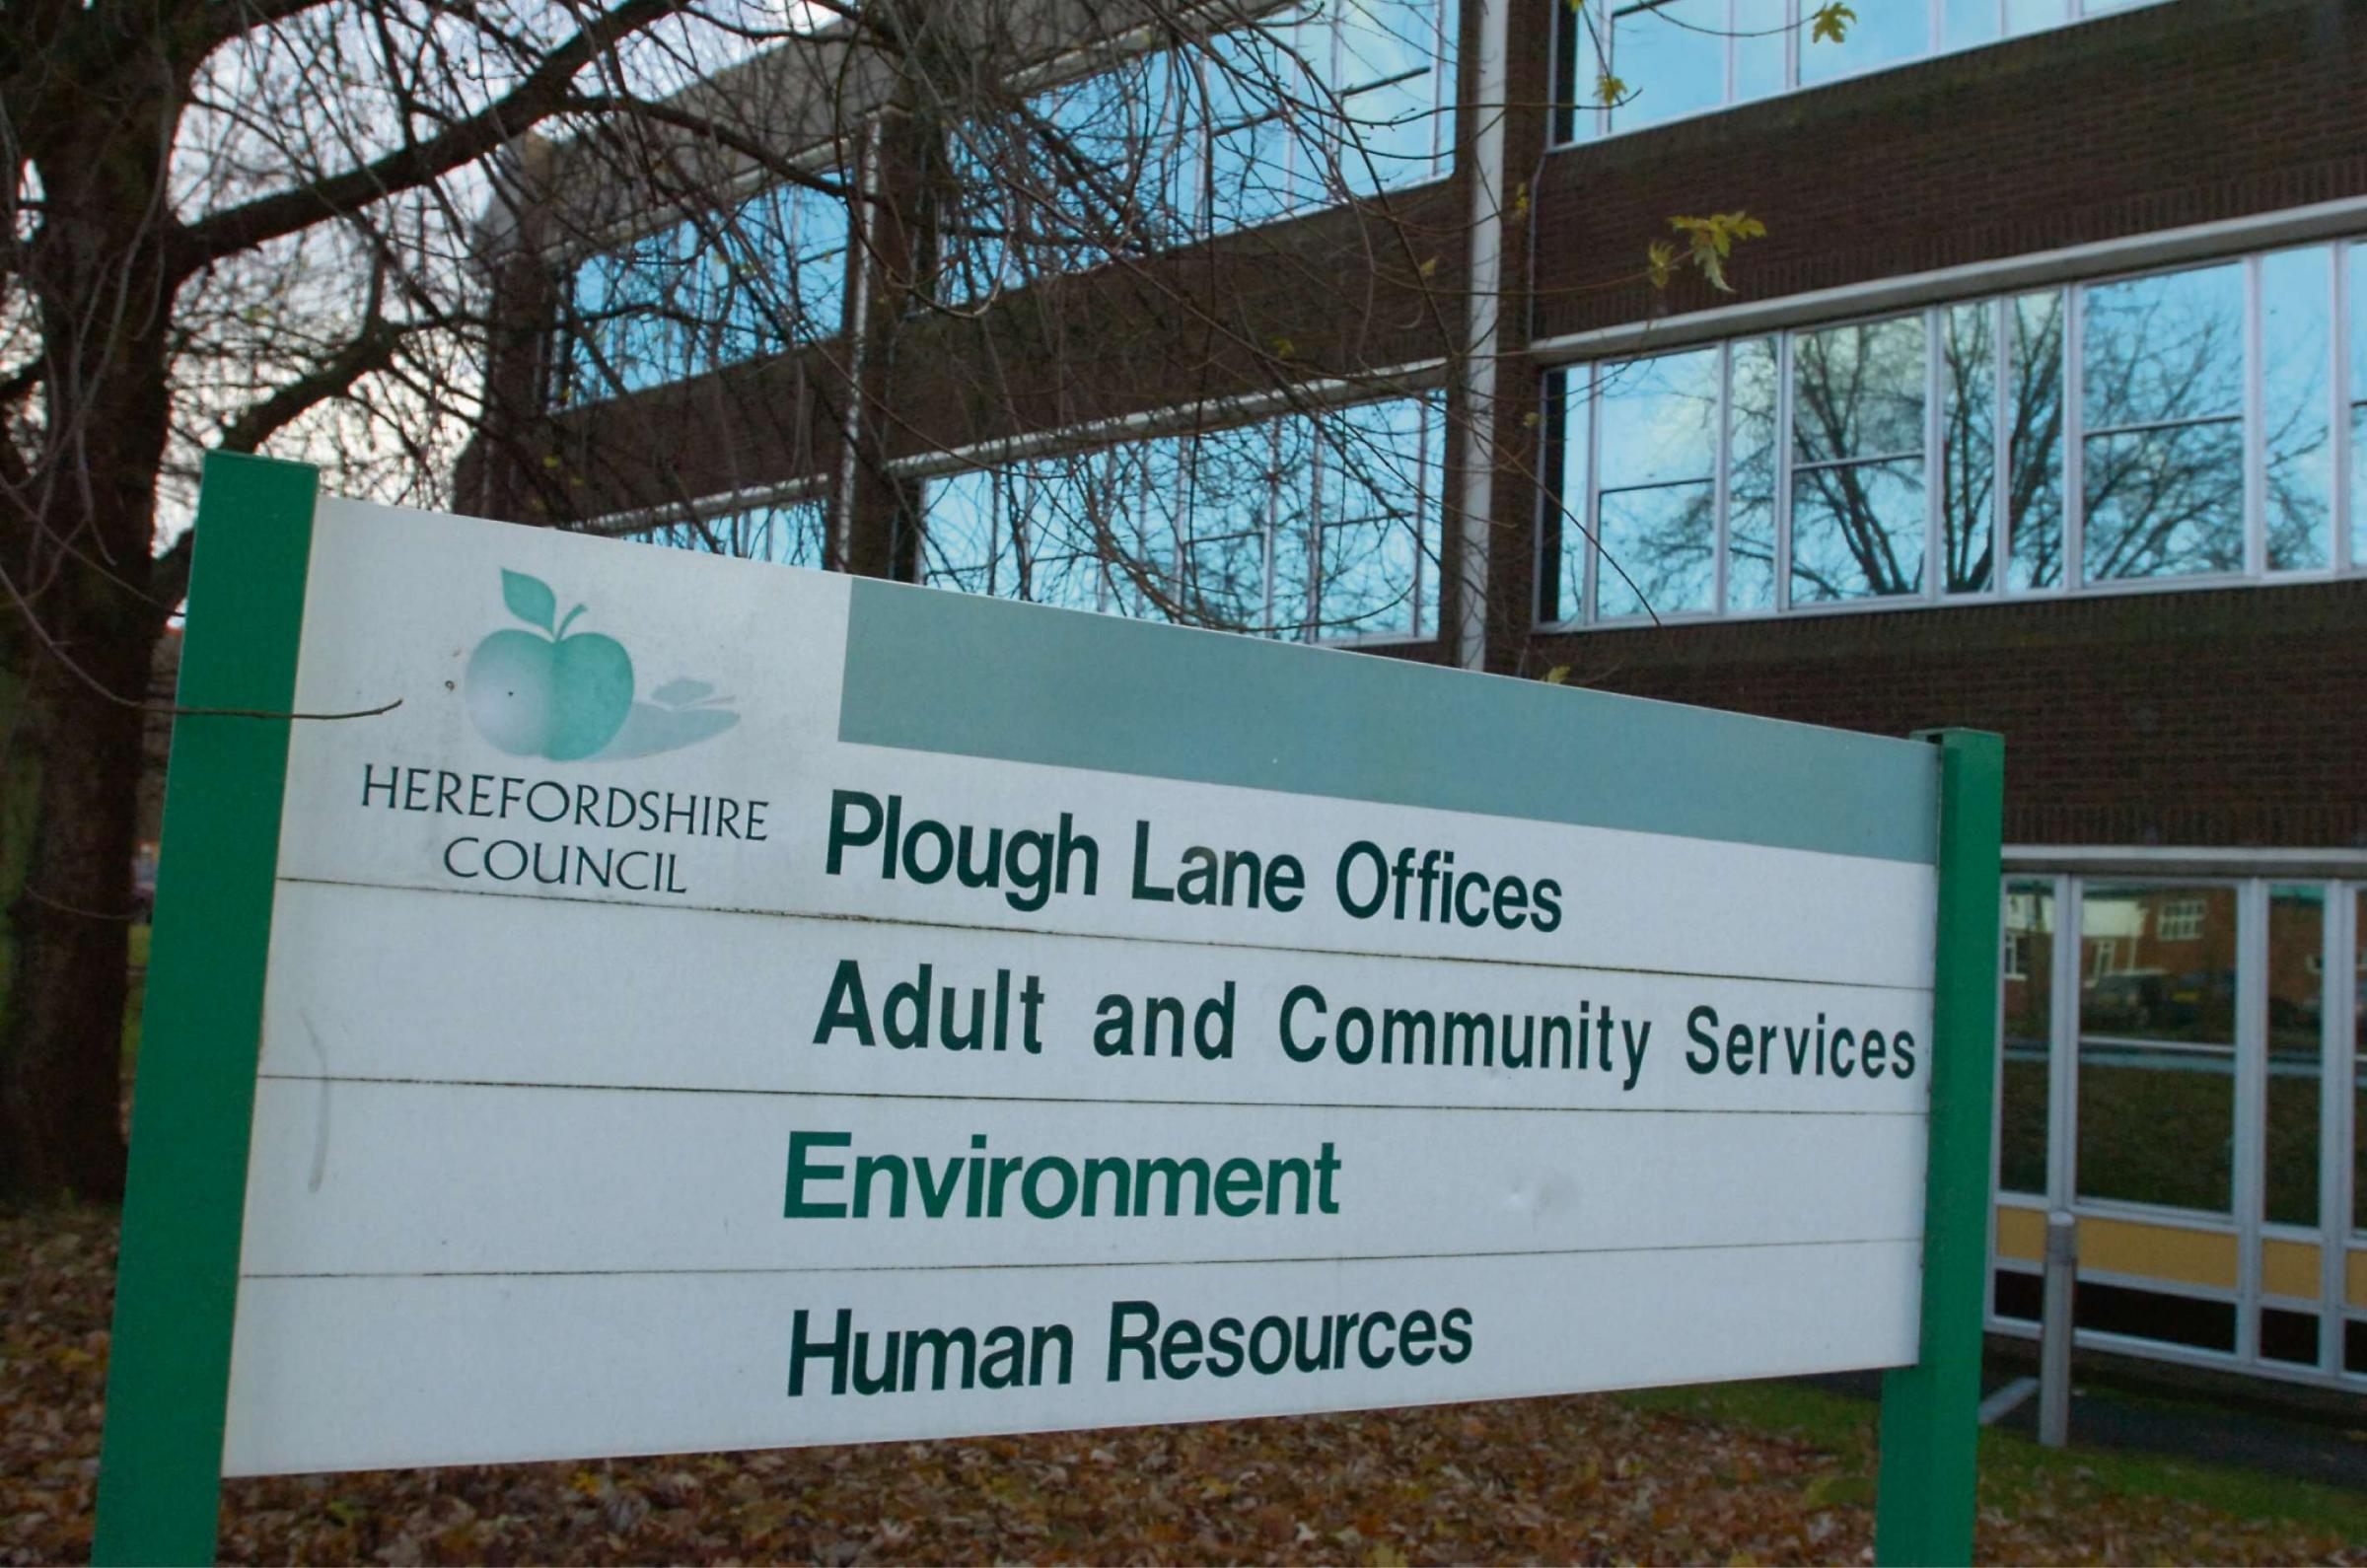 Hereford Council Offices, Plough Lane, Hereford. Adult & Community Services, Environment, Human Resources. ENDS. 084933-2 (7309395)